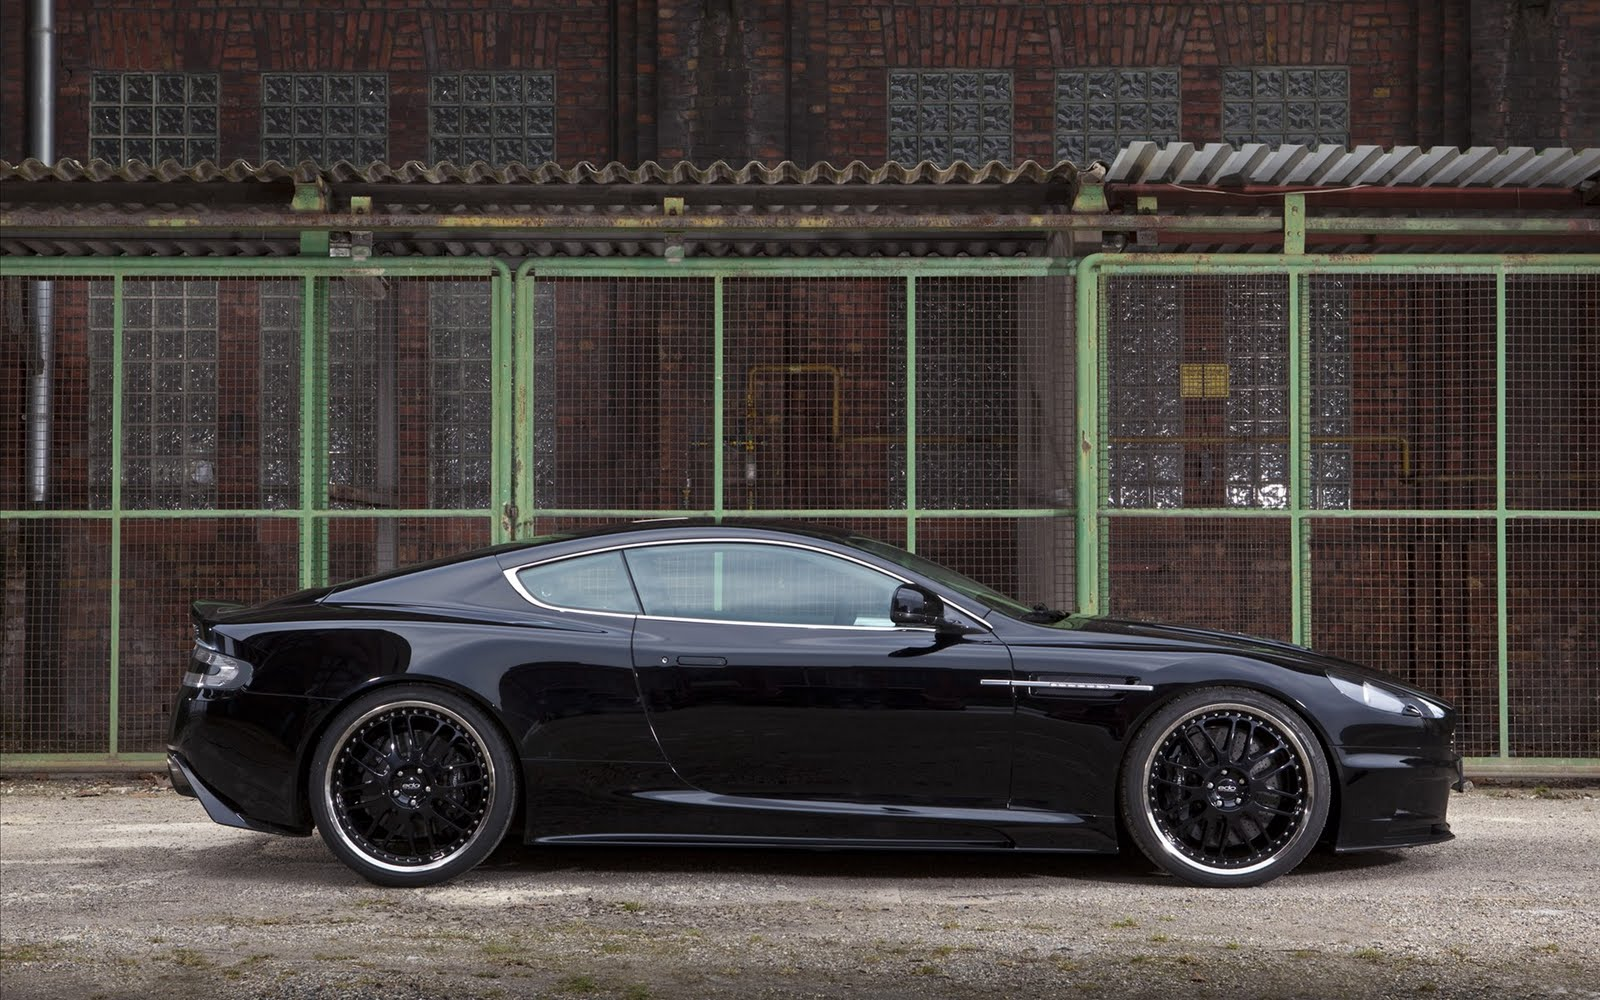 http://4.bp.blogspot.com/-qrWzWSMpUJE/Tm4XrtiZ75I/AAAAAAAAA90/YPoN85LyIEA/s1600/edo-competition-aston-martin-dbs-2011-car-wallpapers-widescreen-01.jpg